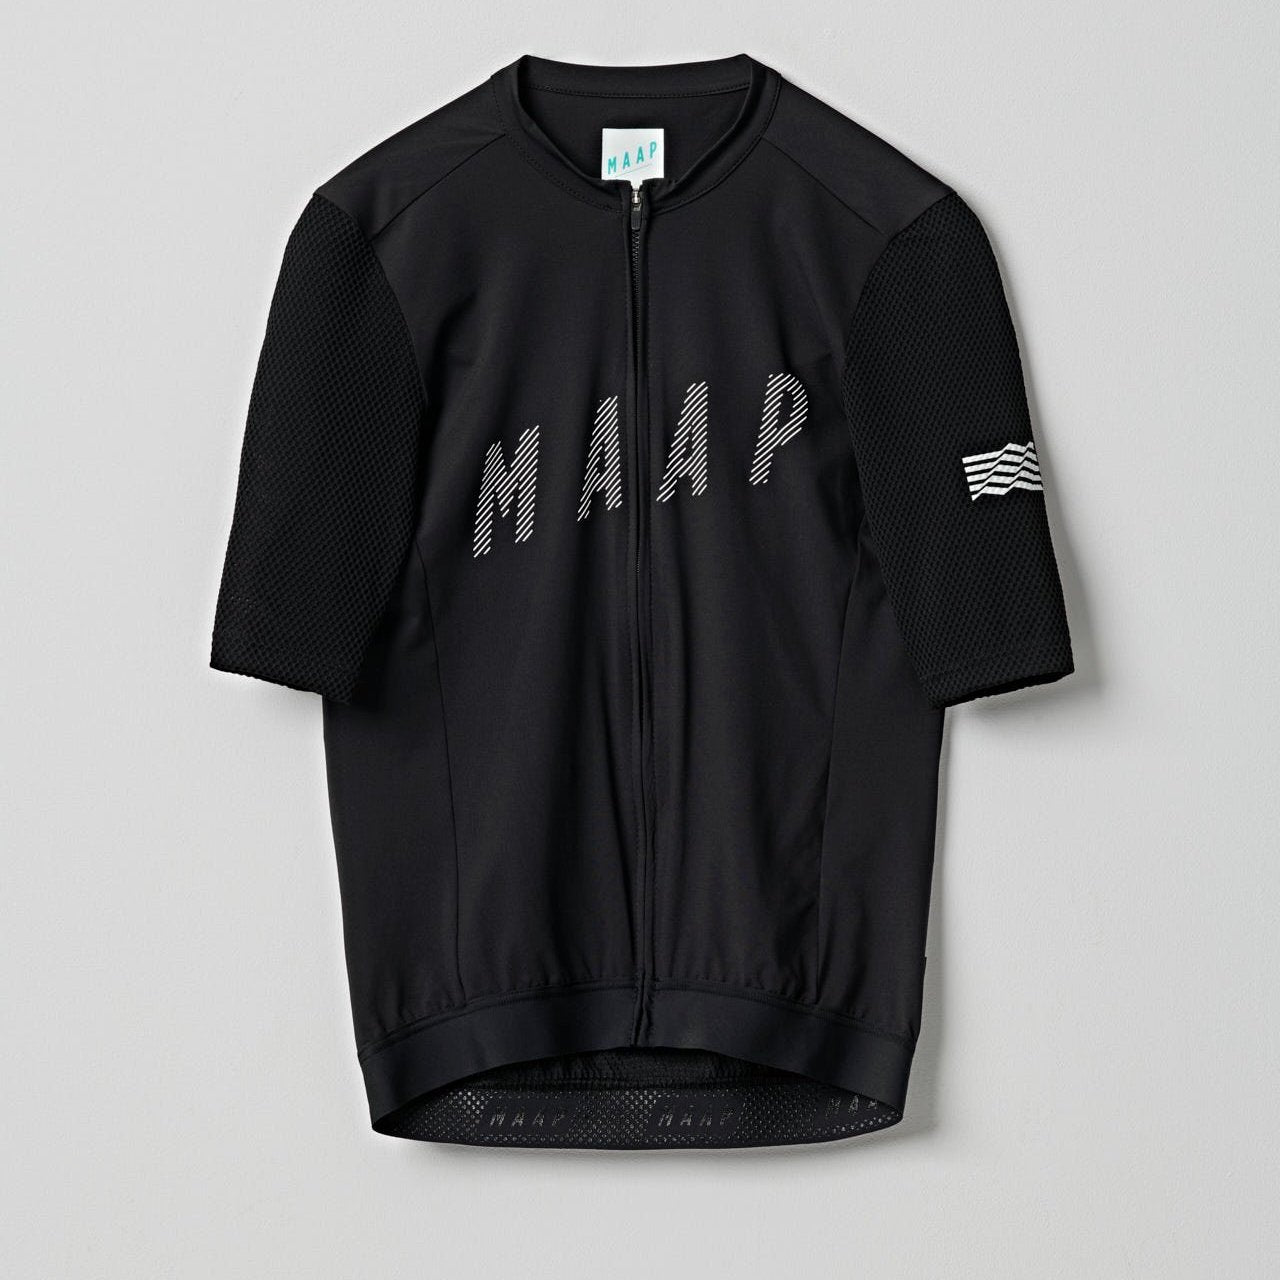 MAAP Echo Pro Base Jersey - Black Cycling Jersey MAAP XS